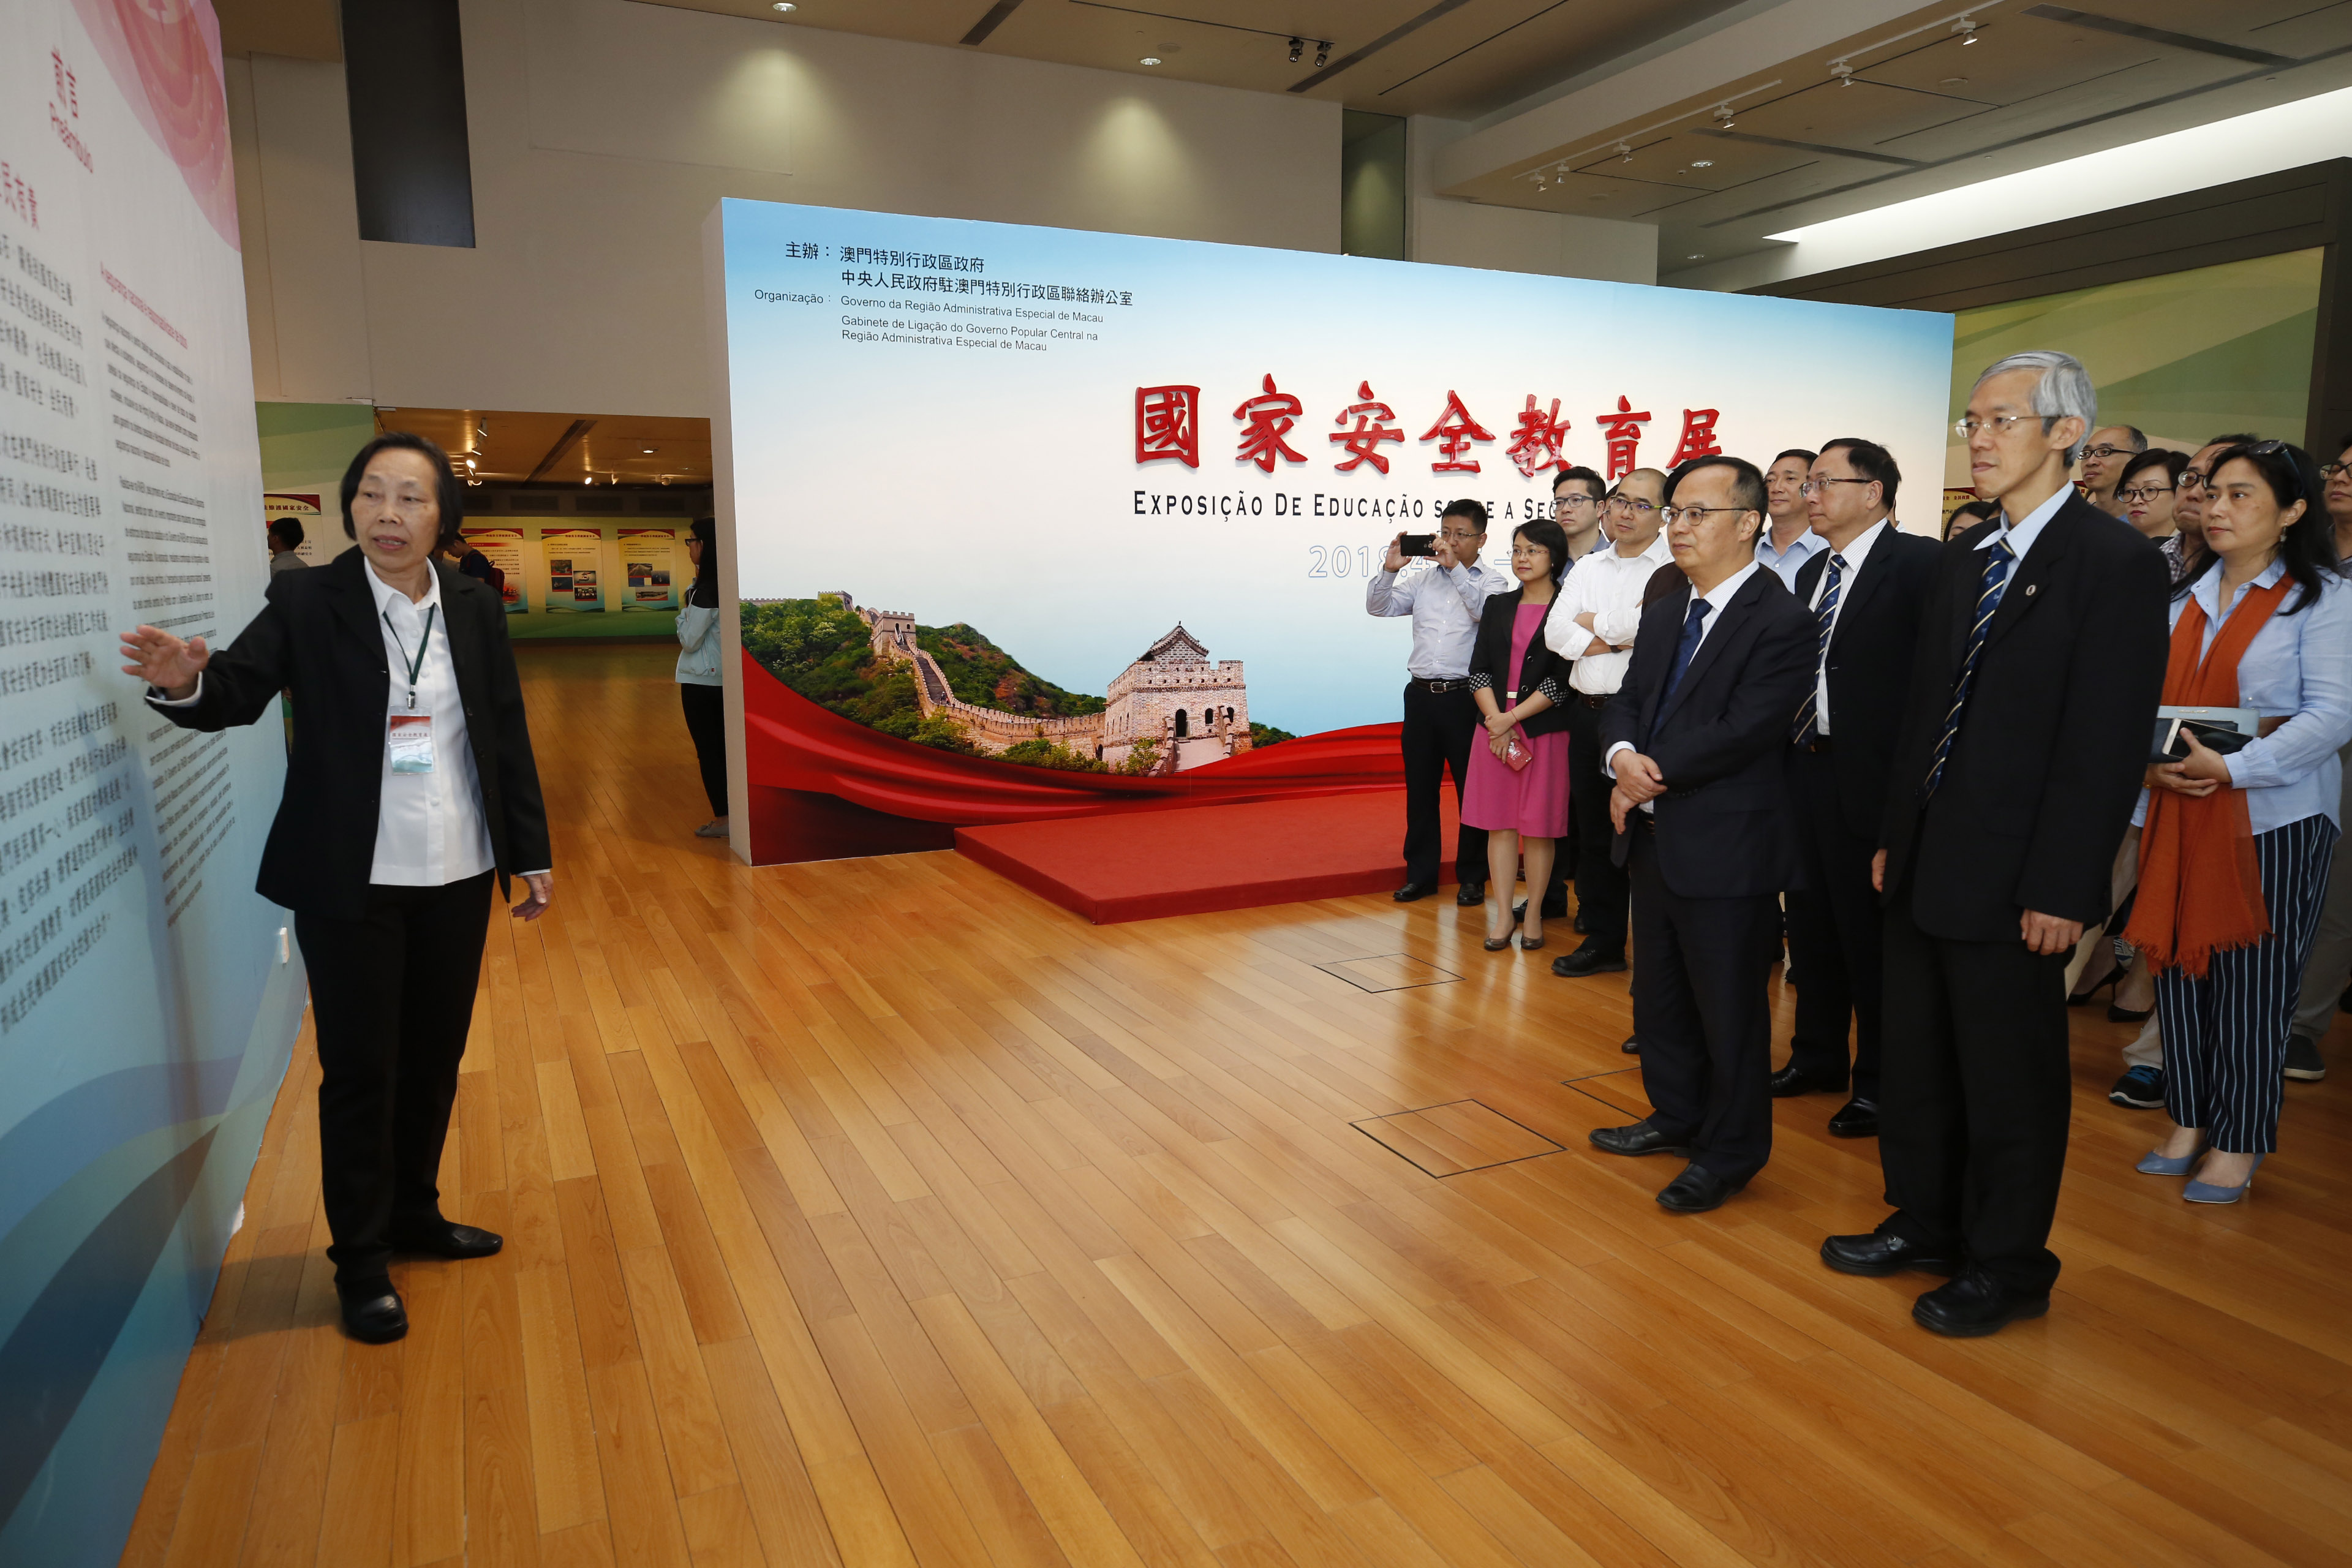 Rector Yonghua Song and the university's senior management team in the exhibition